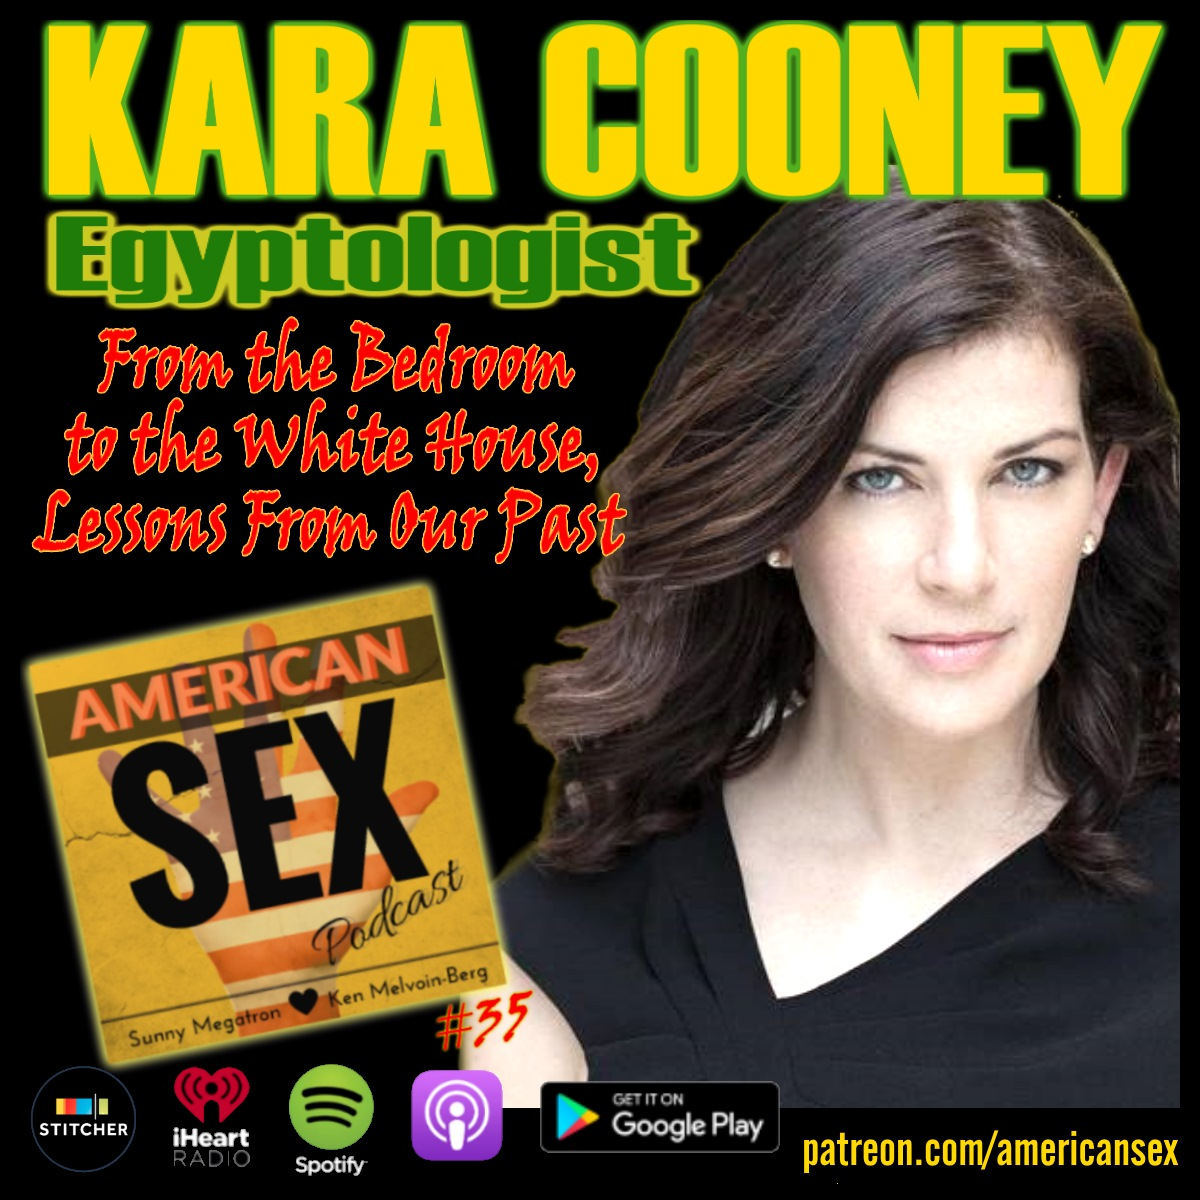 Kara Cooney Egyptologist, American Sex Podcast Interview